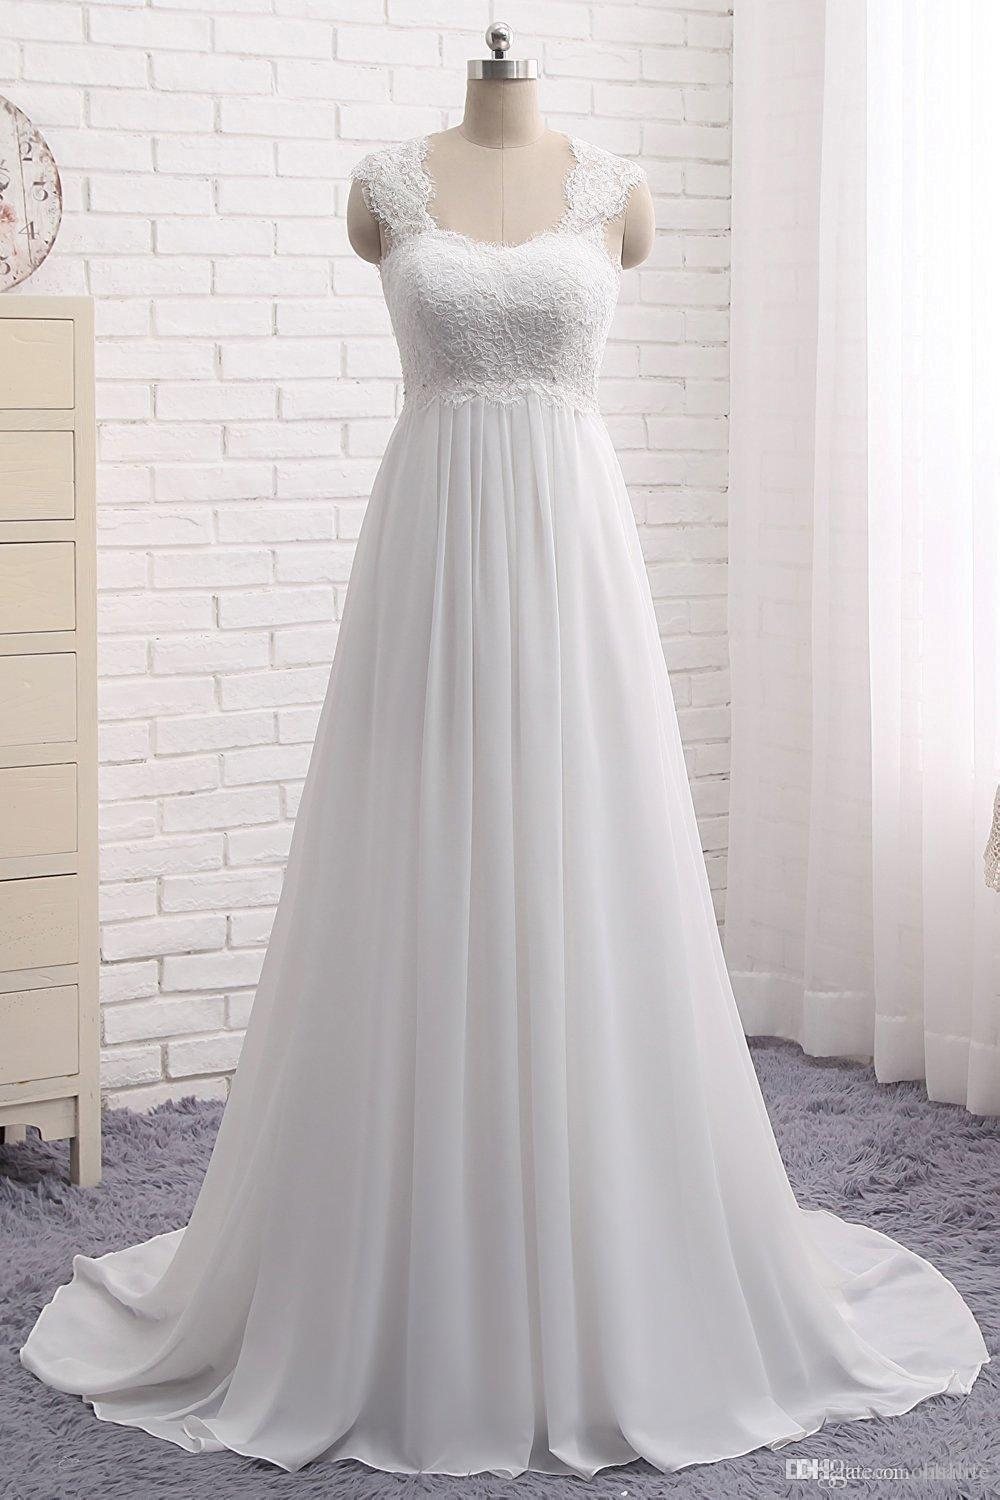 Vintage Plus Size Wedding Dresses A Line Sweetheart Neck Floor Length  Bridal Gowns Sleeveless Fat Girl Wedding Dresses